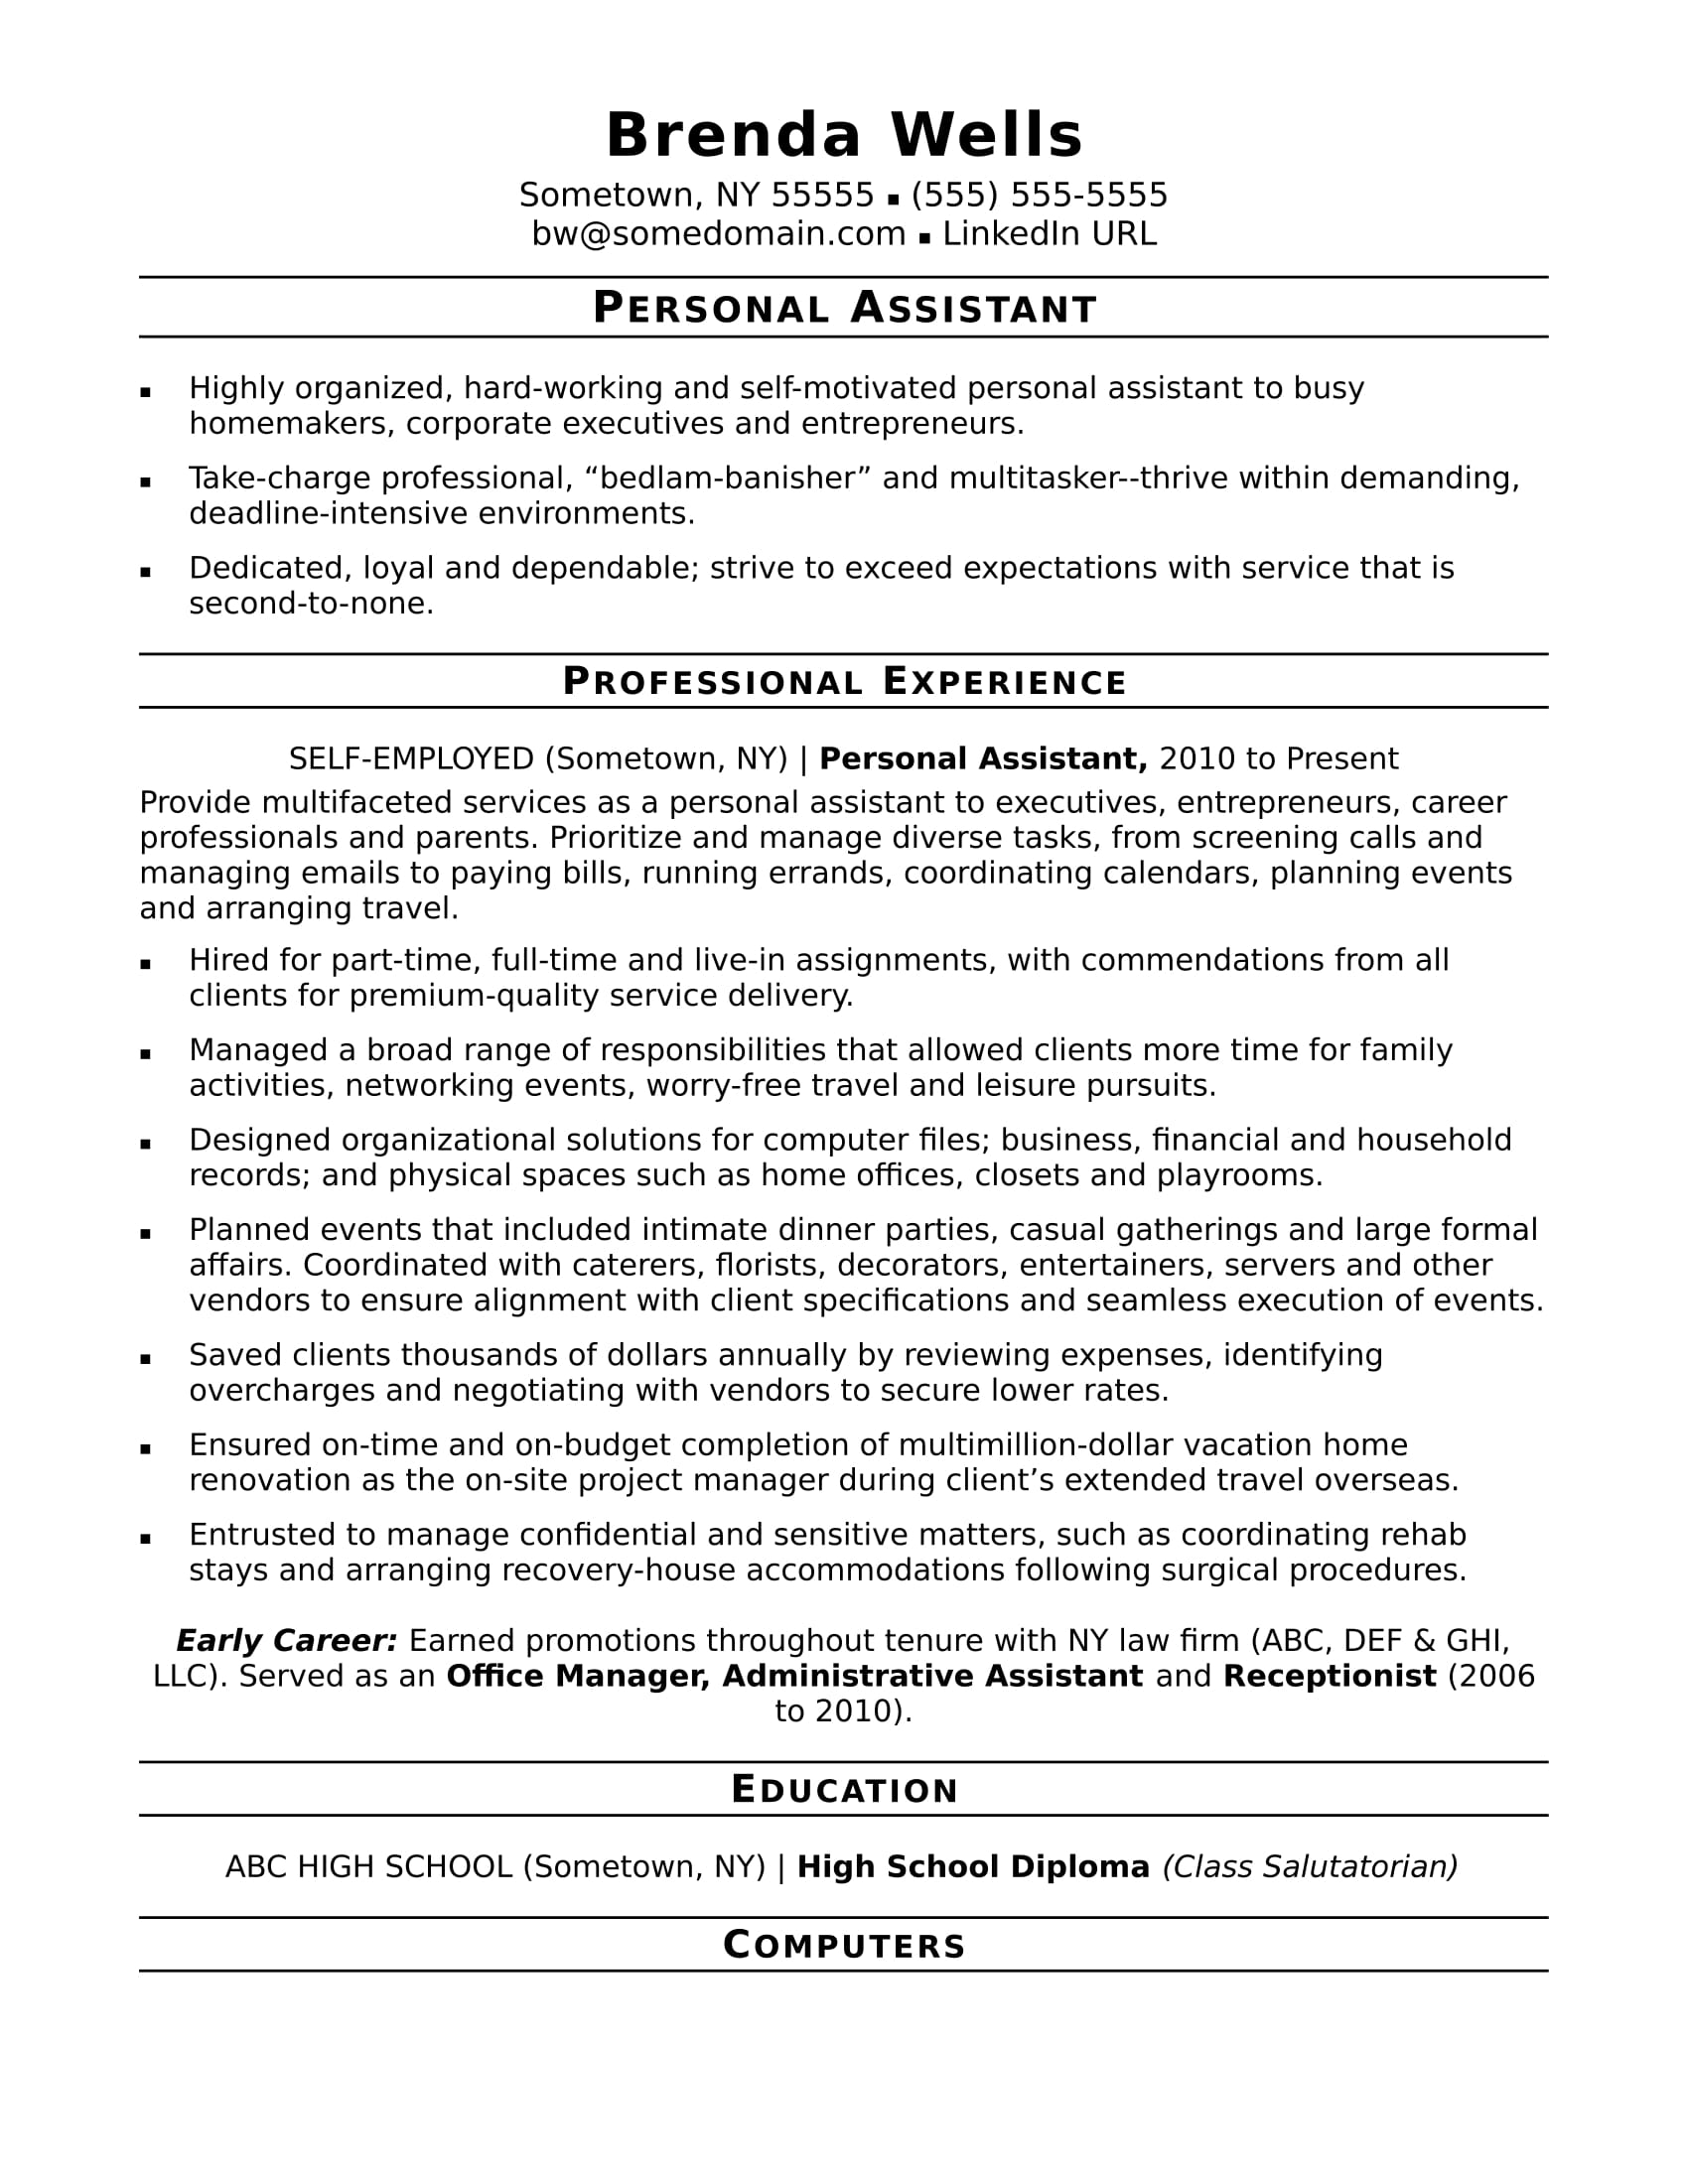 Examples of personal assistant resumes